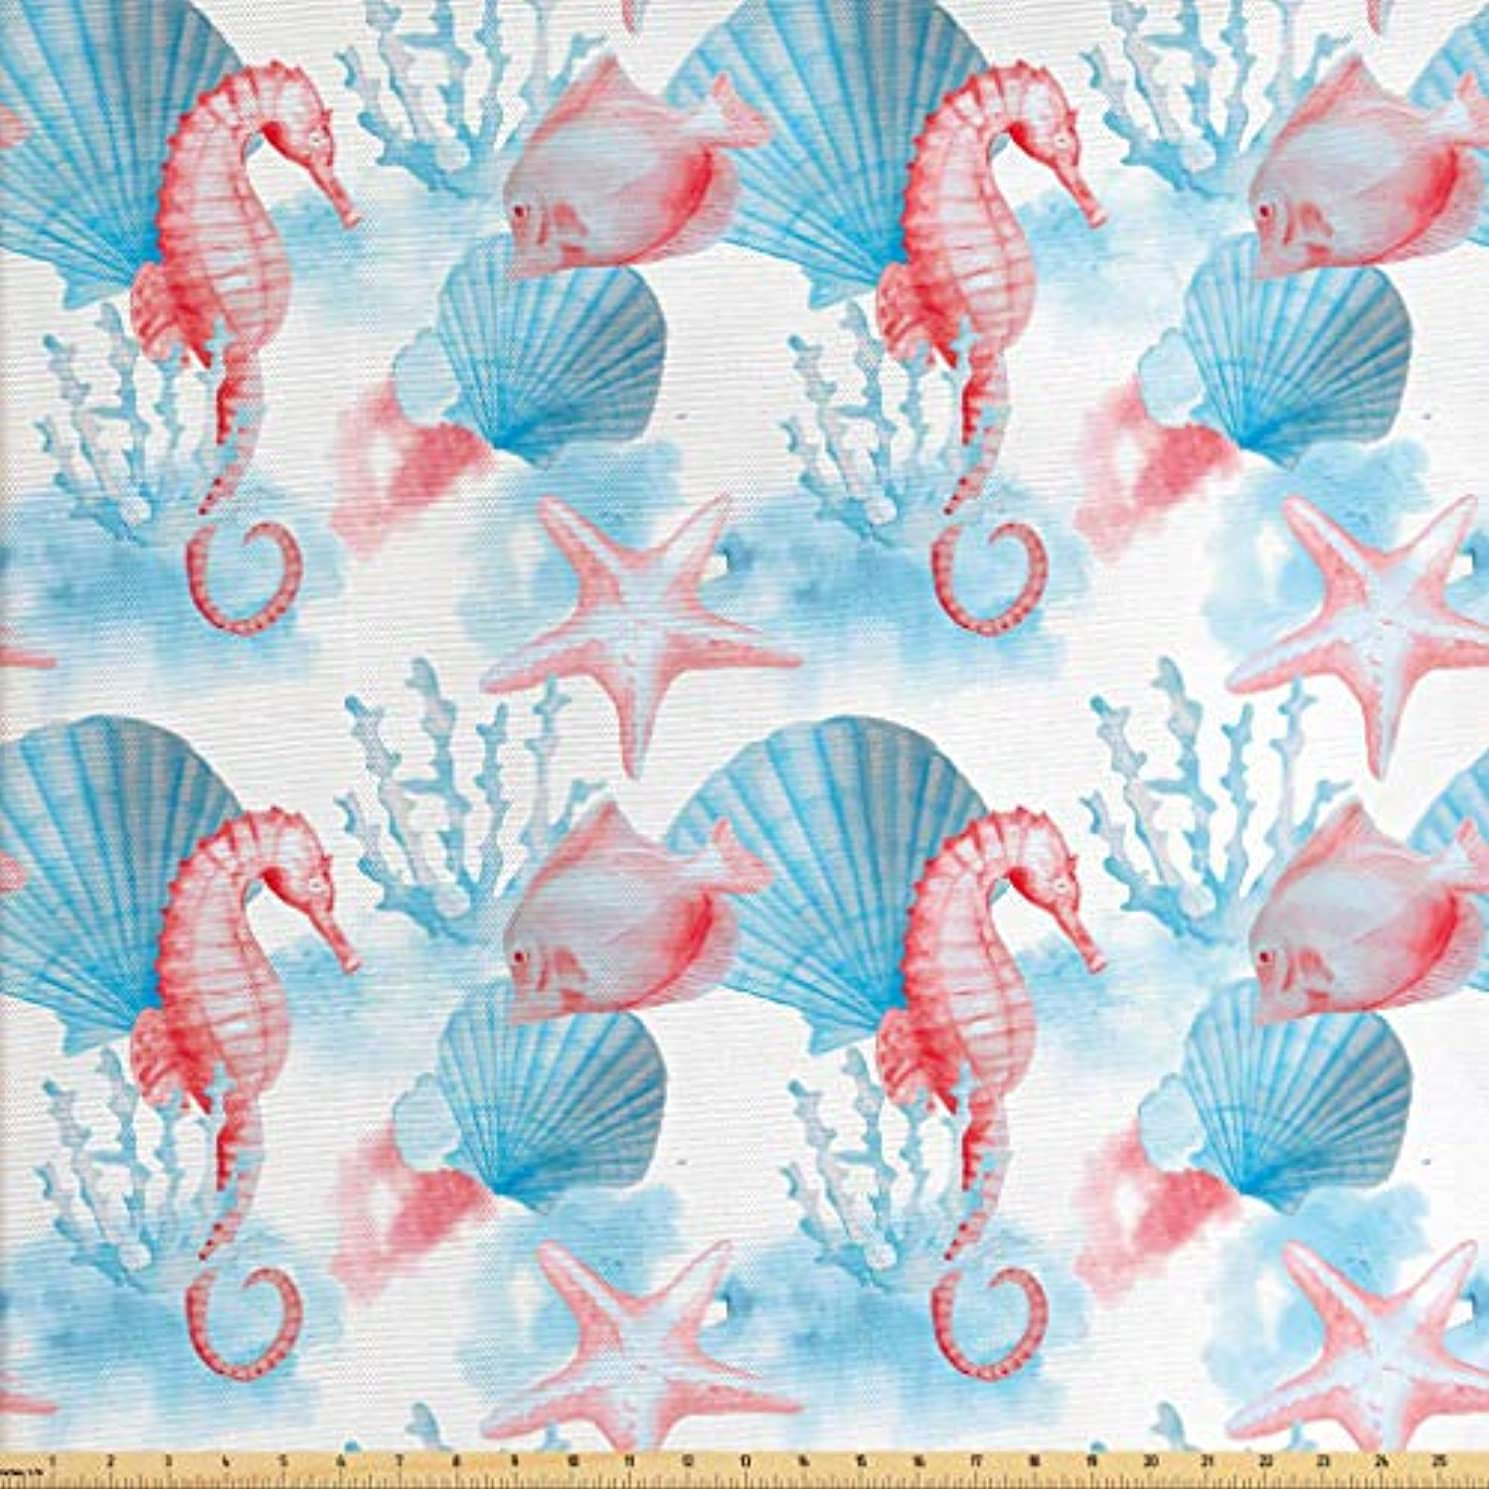 Lunarable Nautical Fabric by The Yard, Shells Sea Horse Corals Fish Sandy Beach Exotic Stylized Watercolor Effect, Decorative Fabric for Upholstery and Home Accents, 1 Yard, Coral Blue White